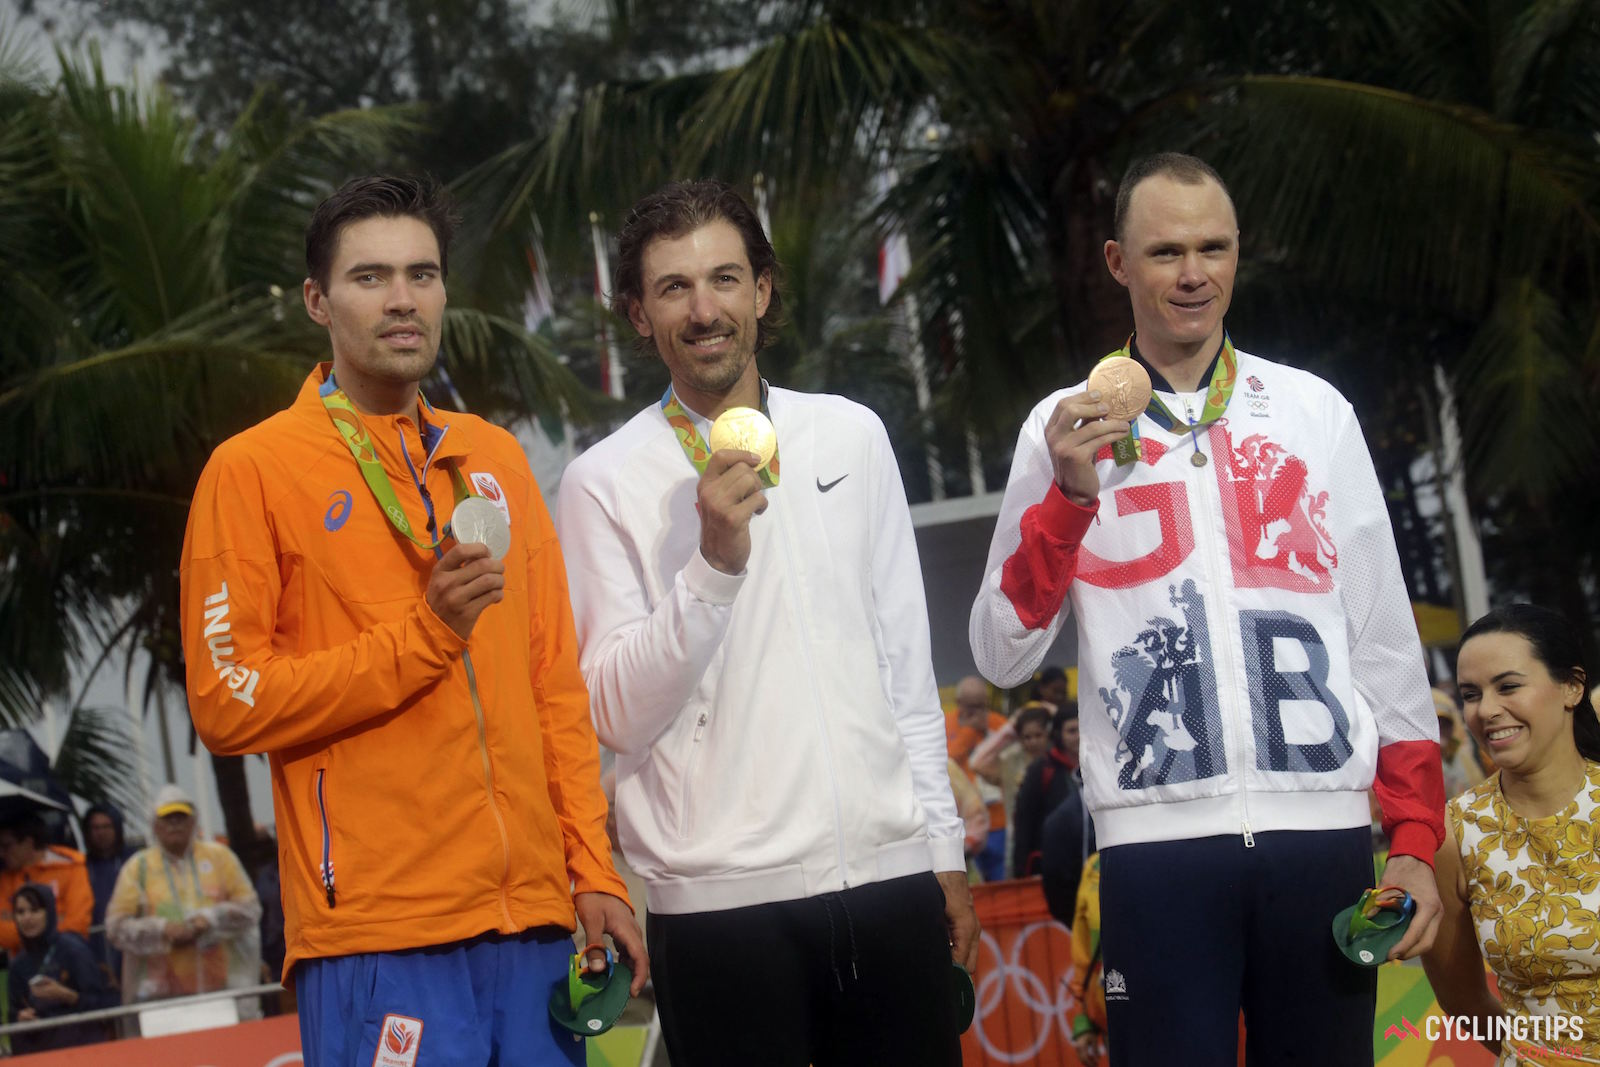 The podium of the 2016 Olympic time trial, from left: Tom Dumoulin (The Netherlands), Fabian Cancellara (Switzerland), Chris Froome (Great Britain). Photo: Anton Vos/Cor Vos.